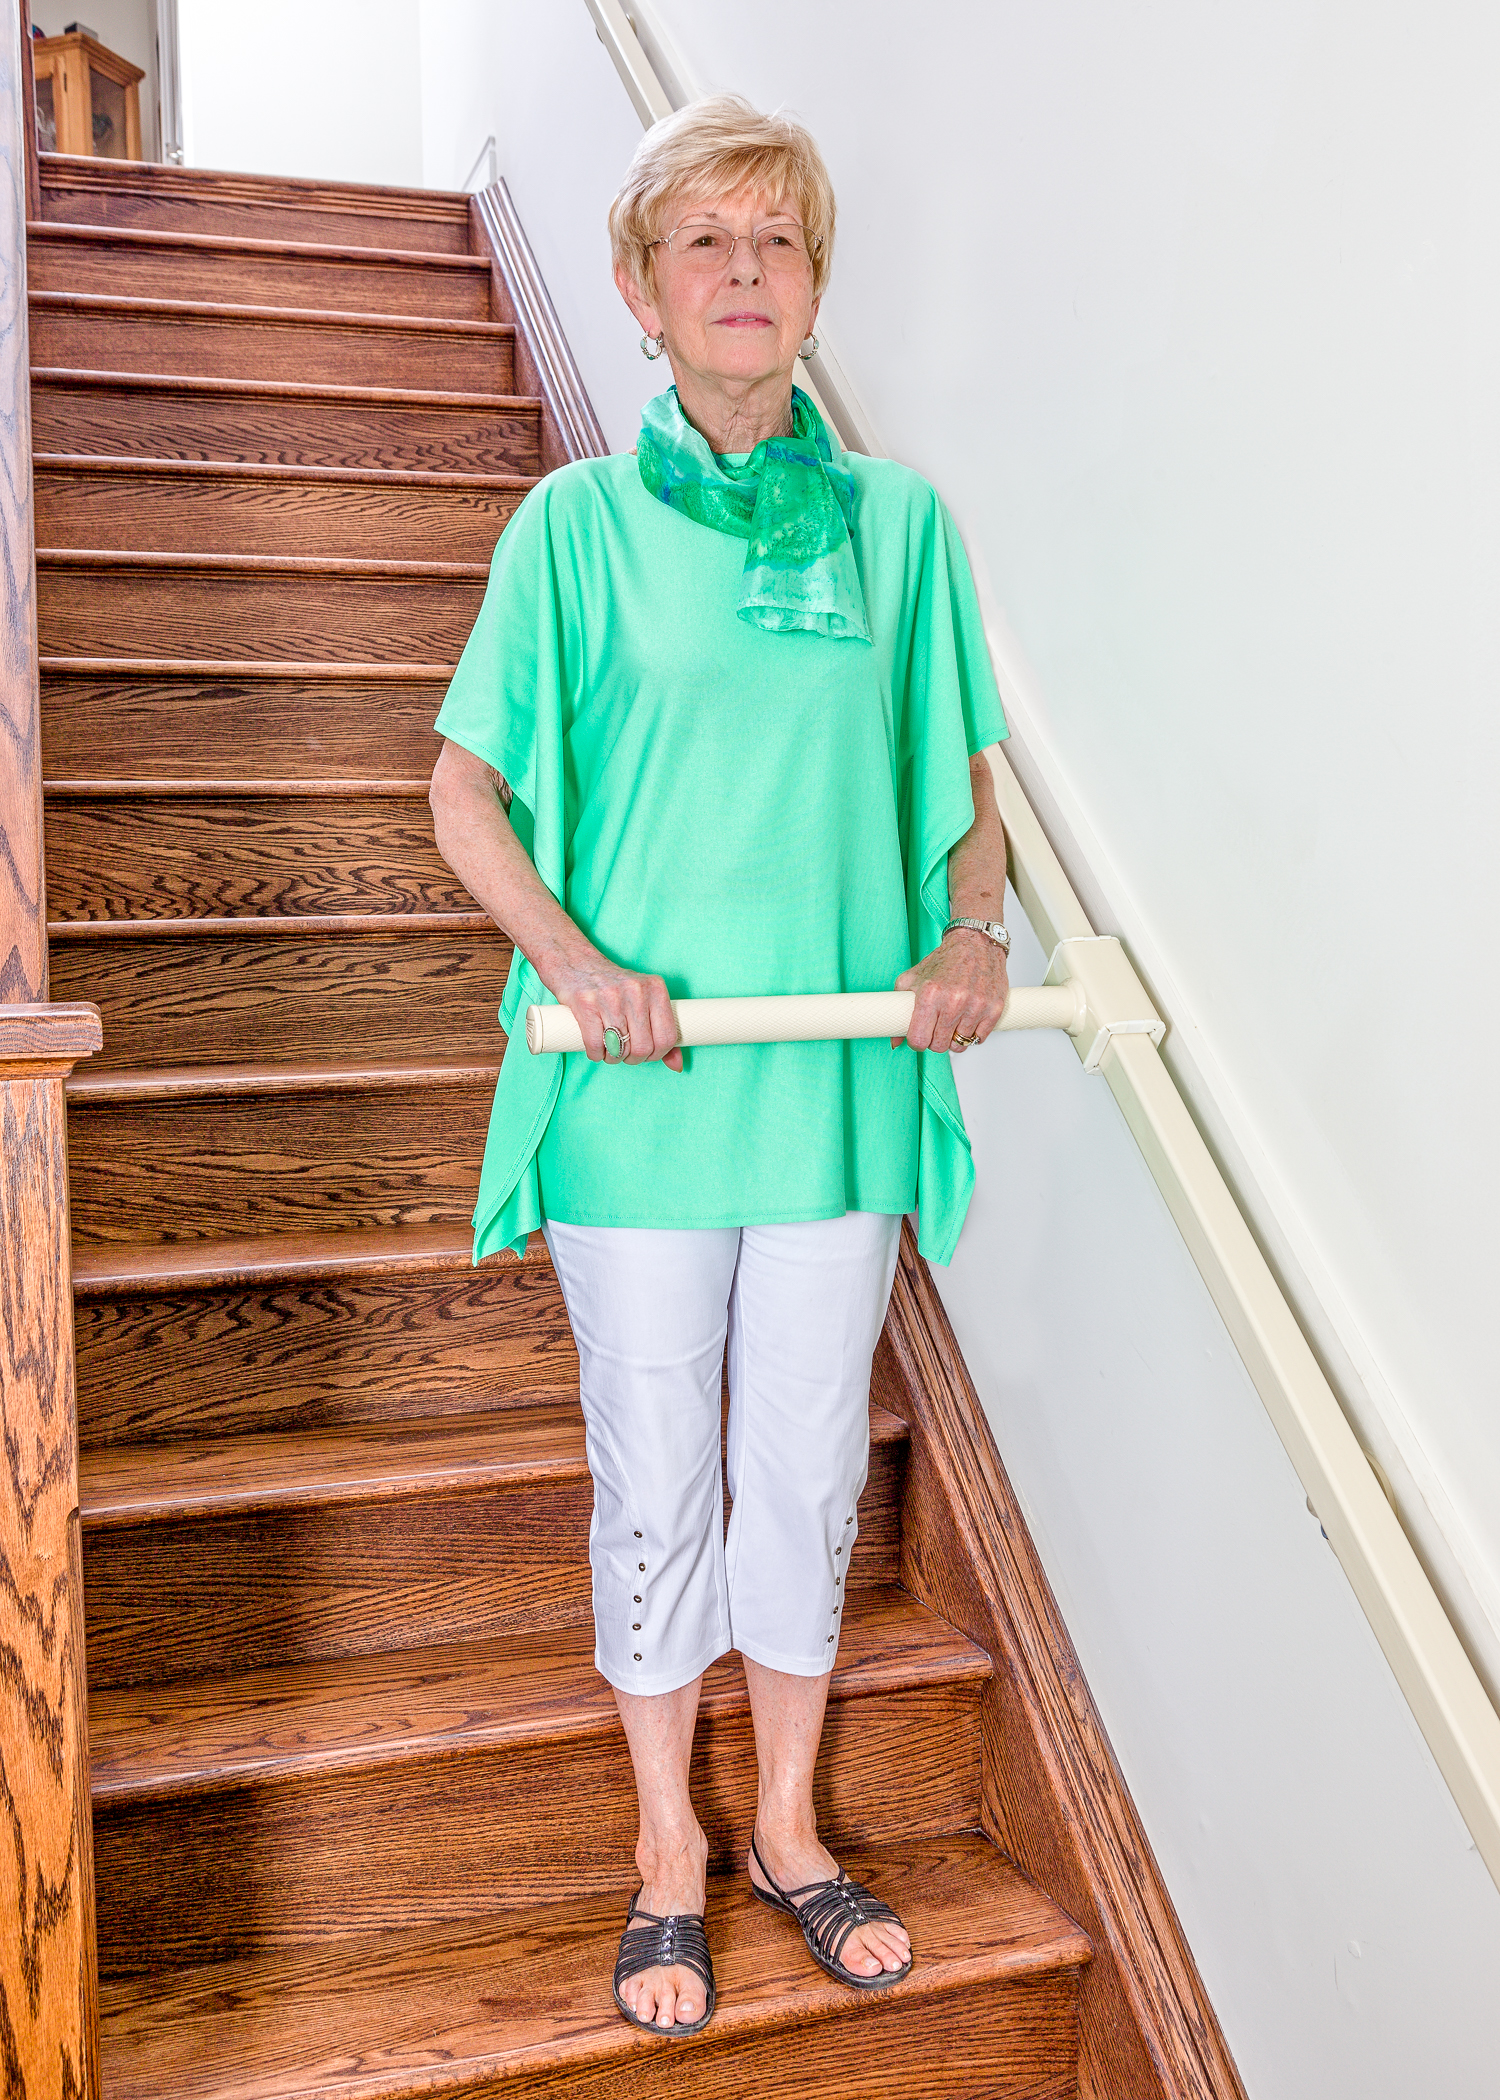 Wellwise by Shoppers Drugmart. Feel confident and safe in your home with StairSteady. Woman with StairSteady product going down the stairs.